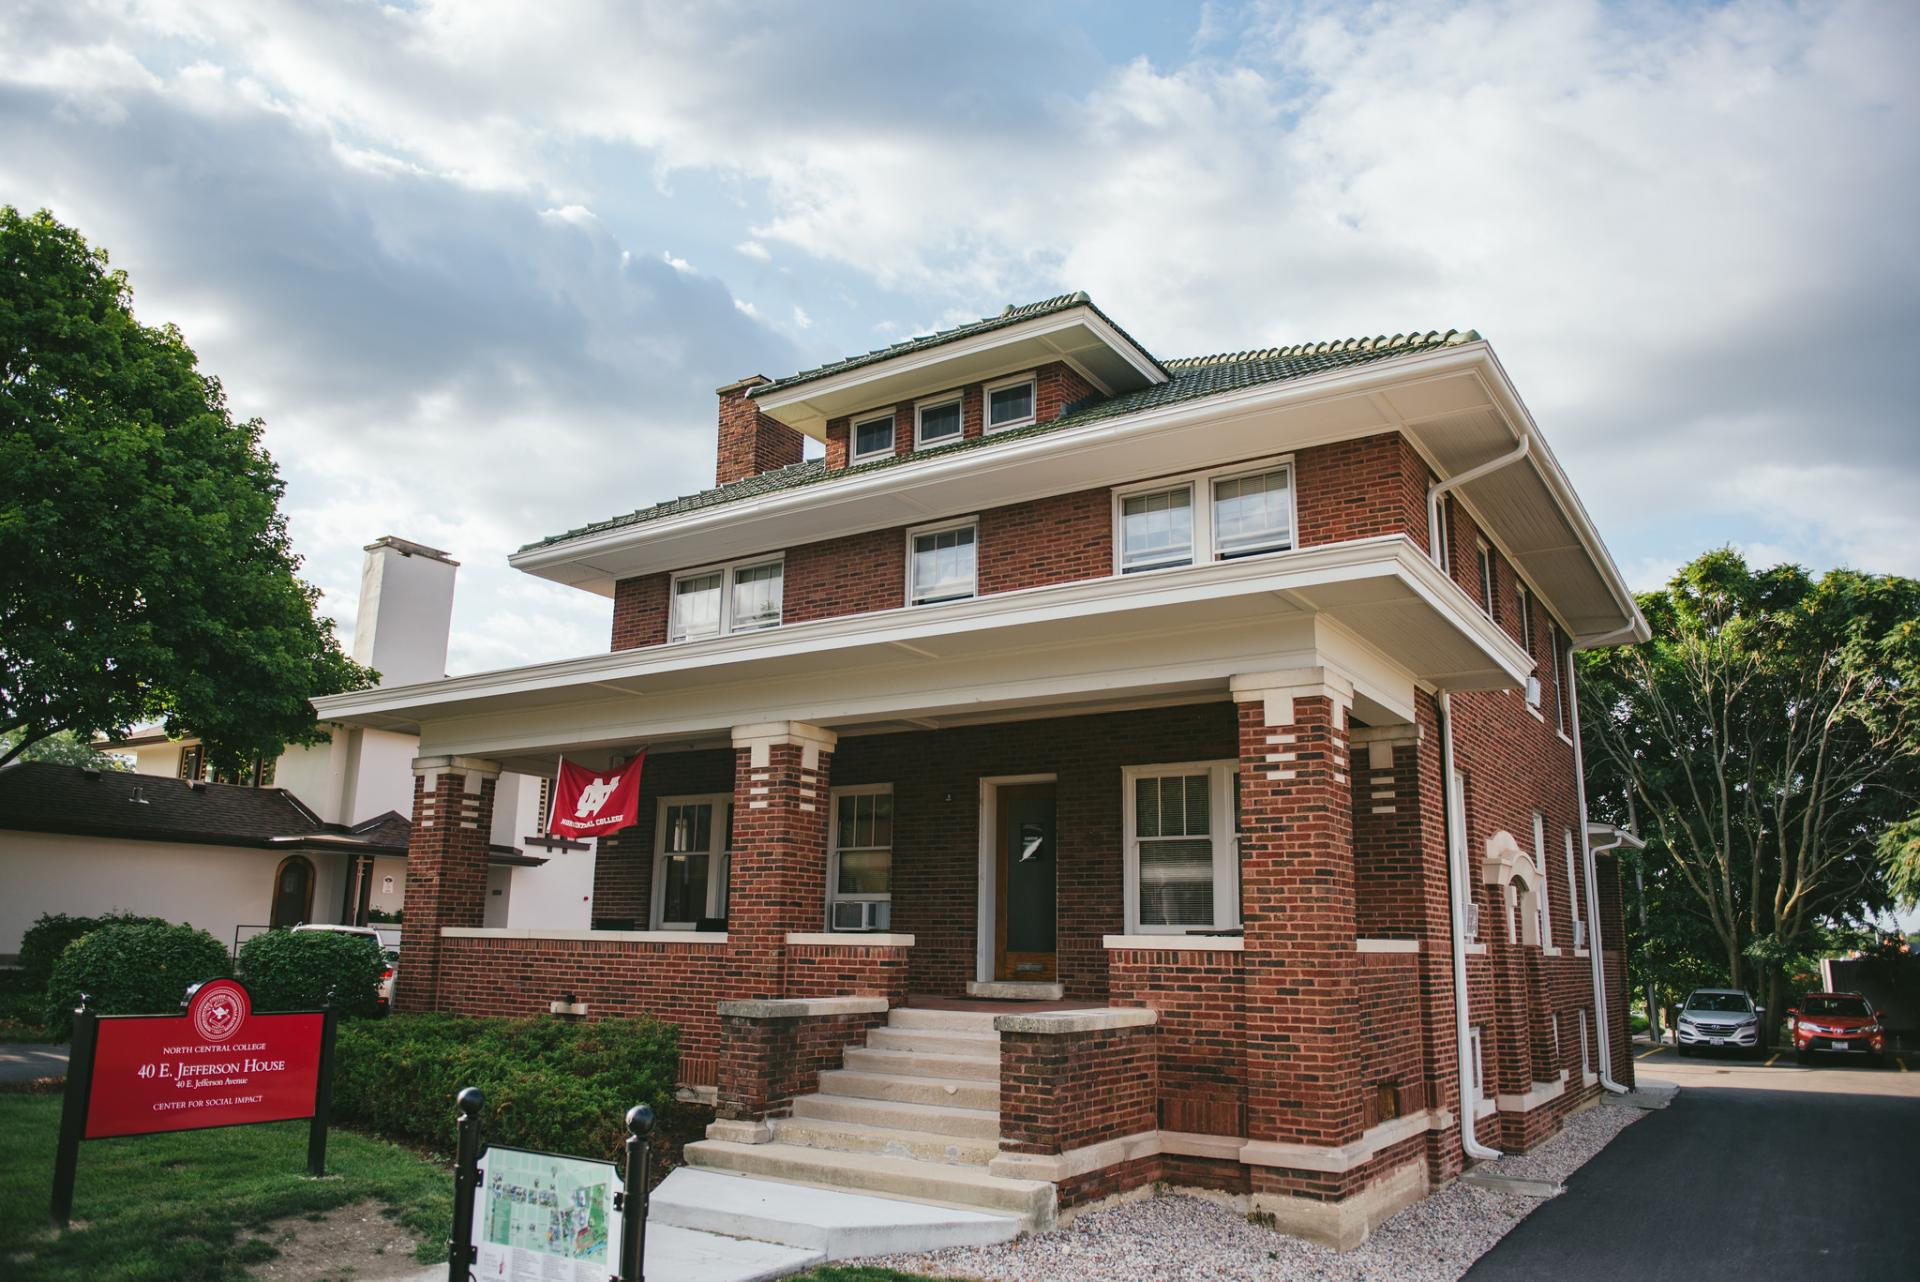 The house at 40 E. Jefferson Avenue in Naperville, home of North Central College's Center for Social Impact.